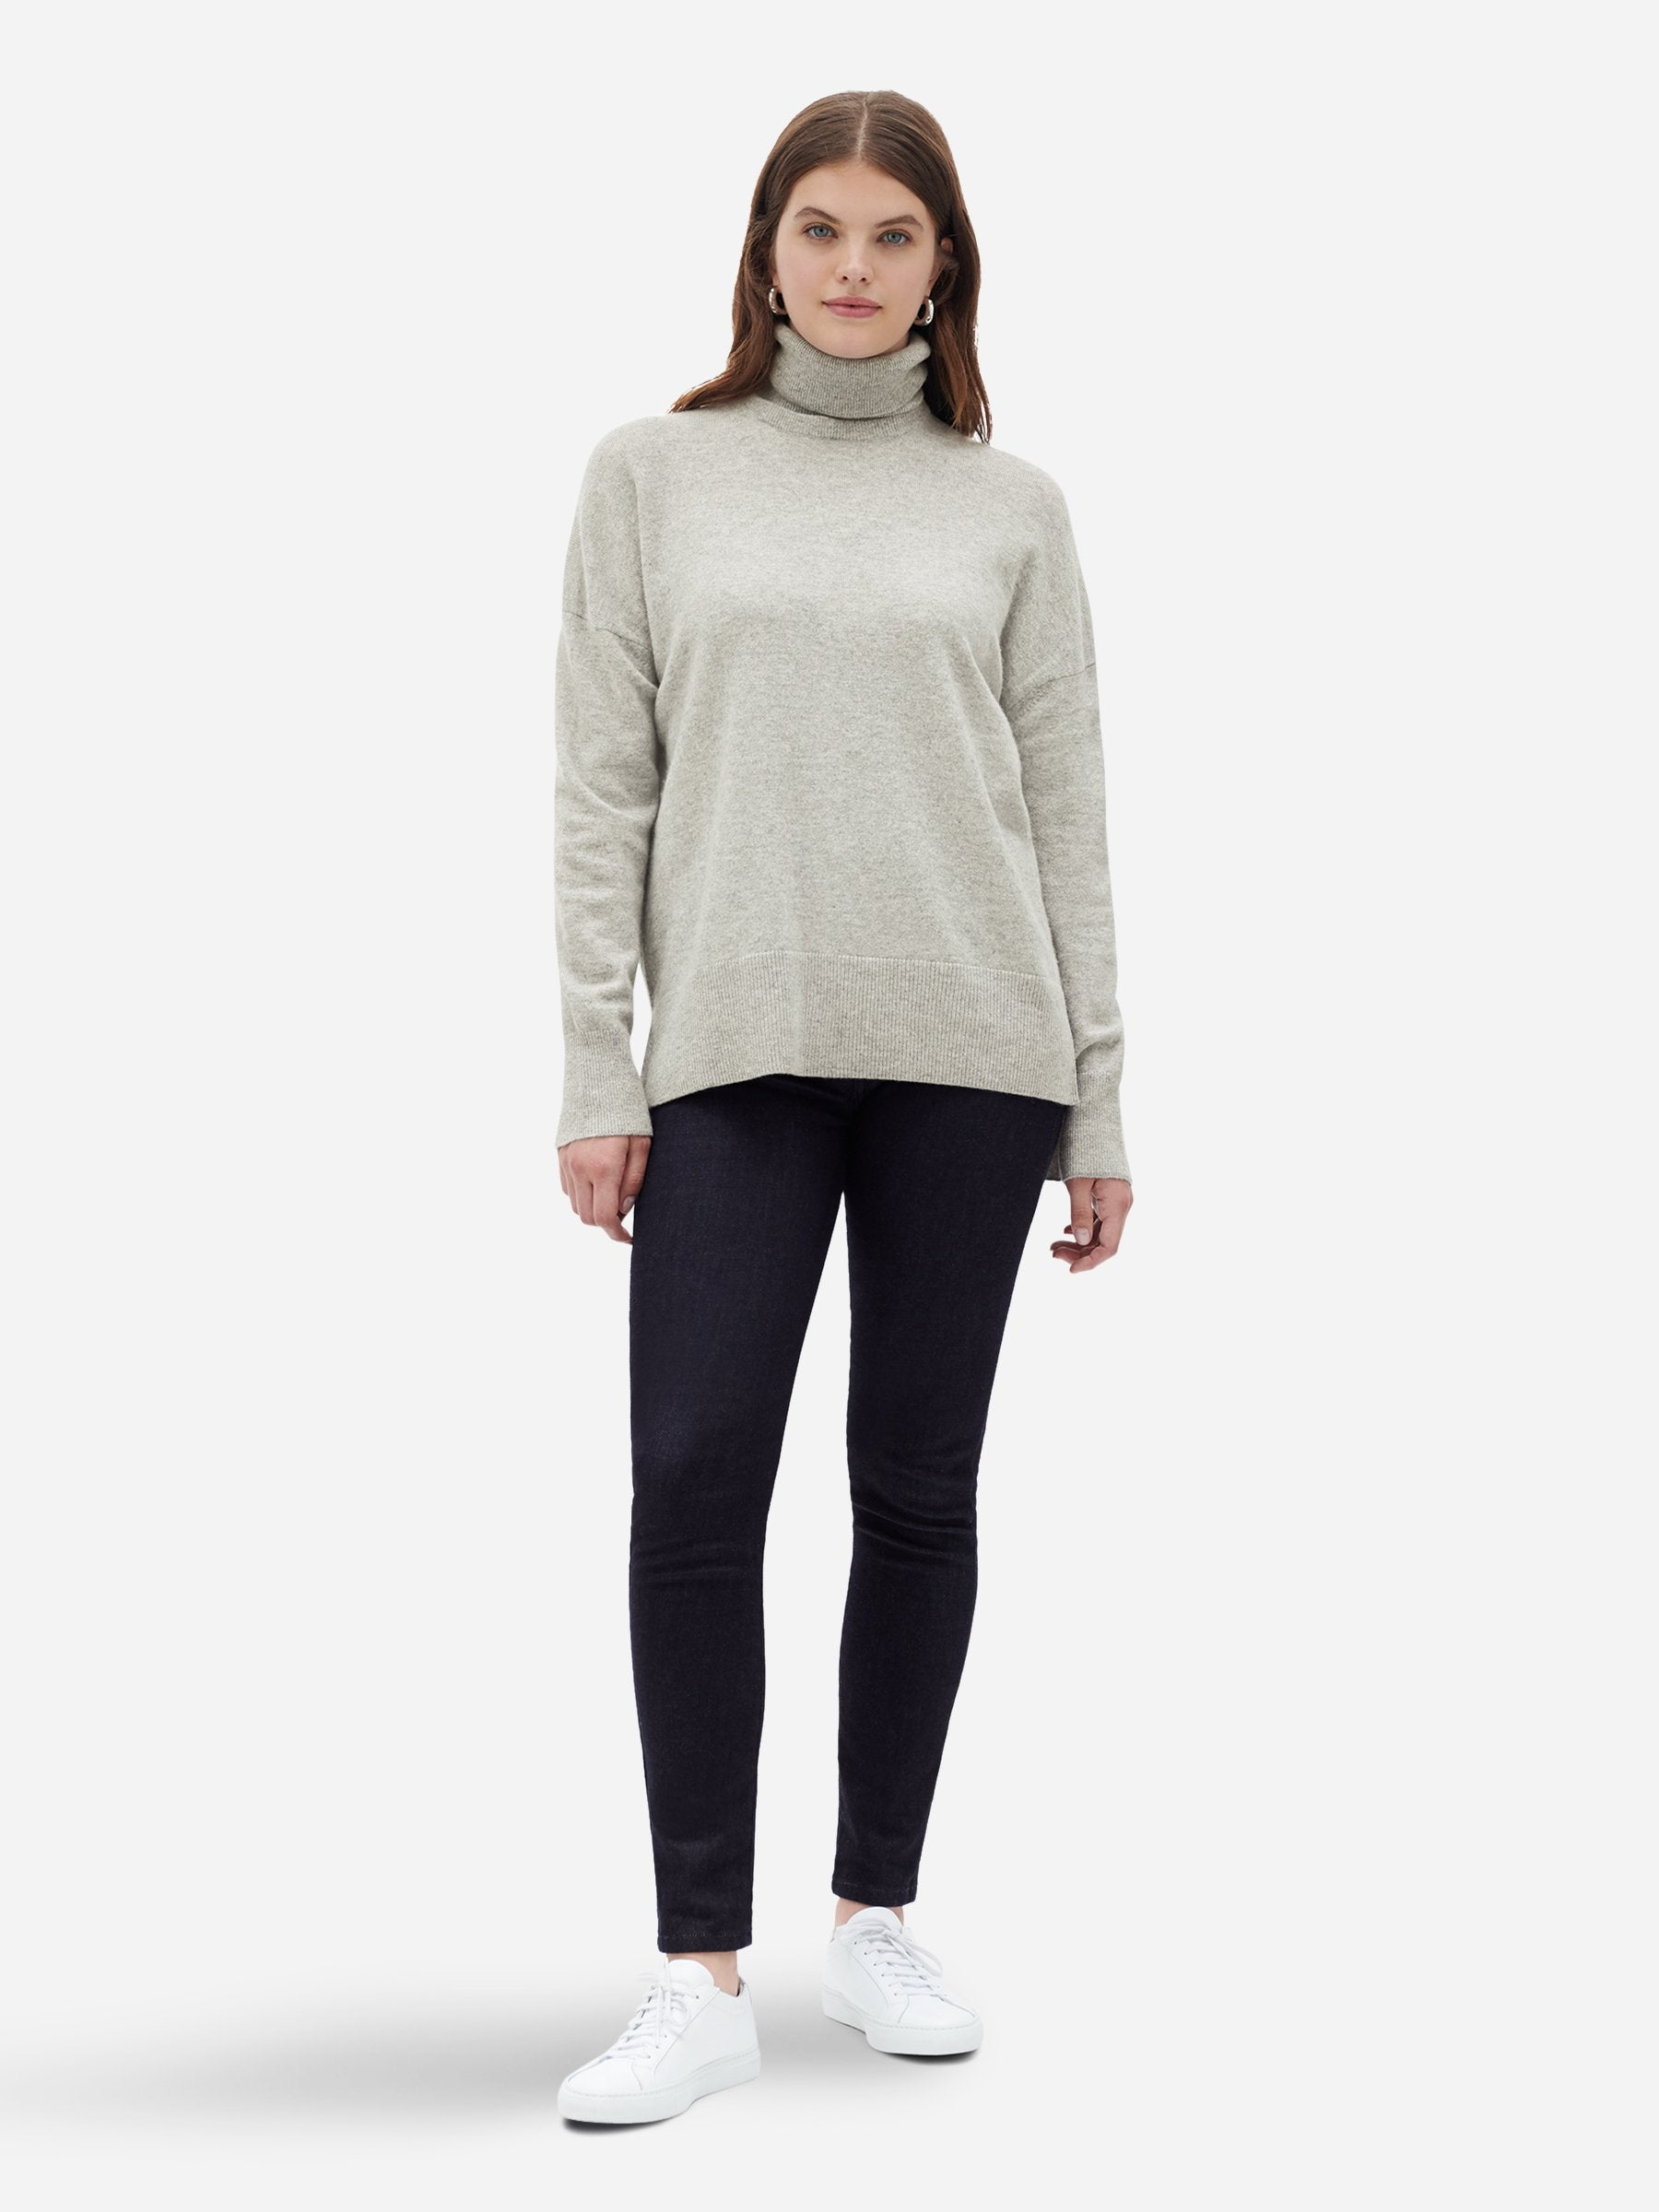 Dream 2-In-1 Turtleneck Sweater